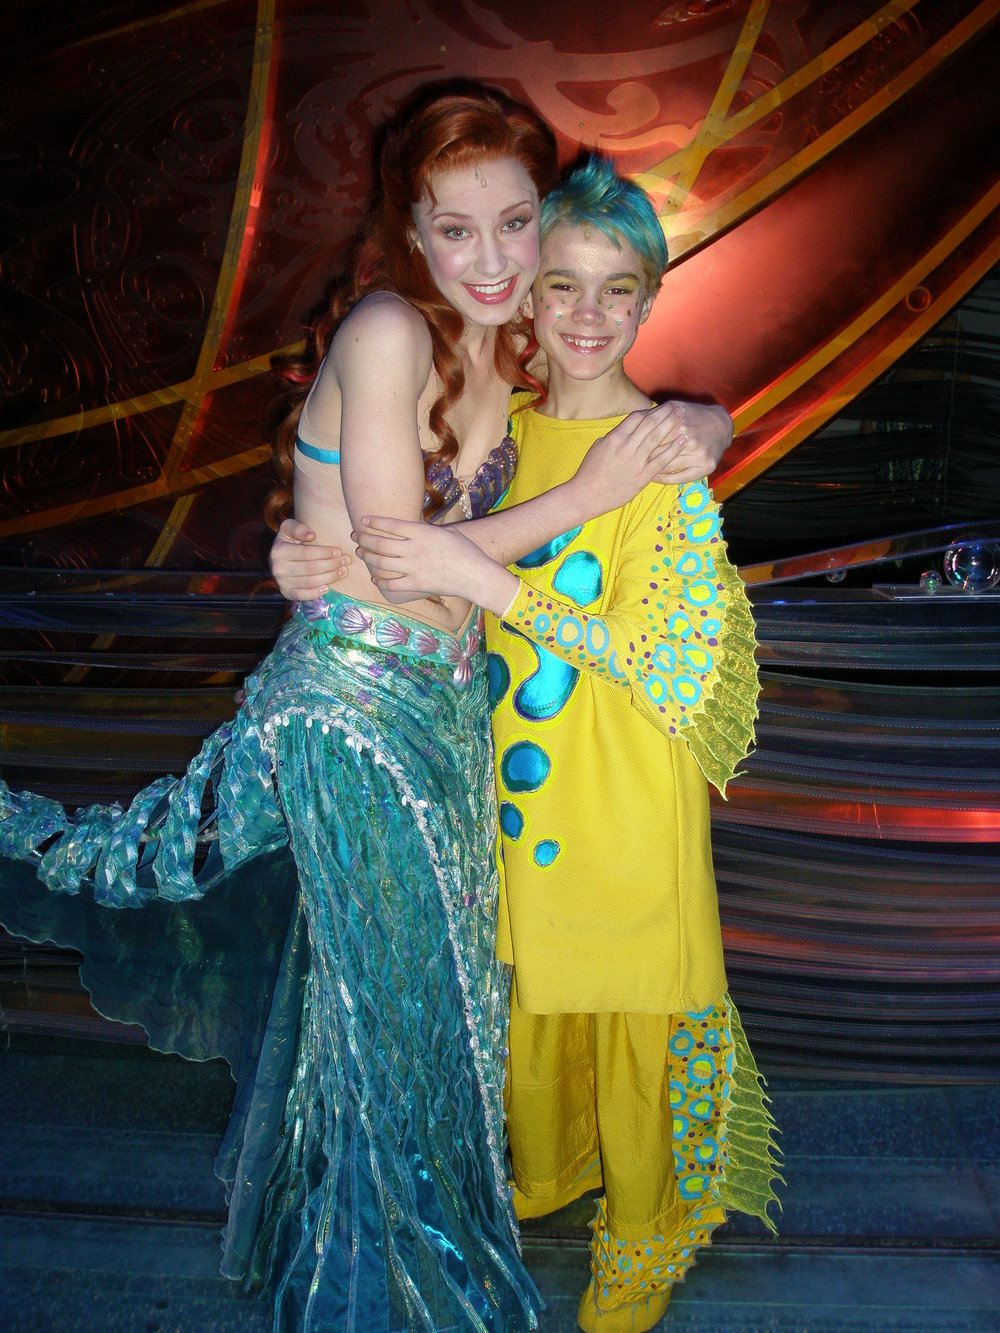 Sierra-Boggess-Little-Mermaid-Broadway-Cody.JPG